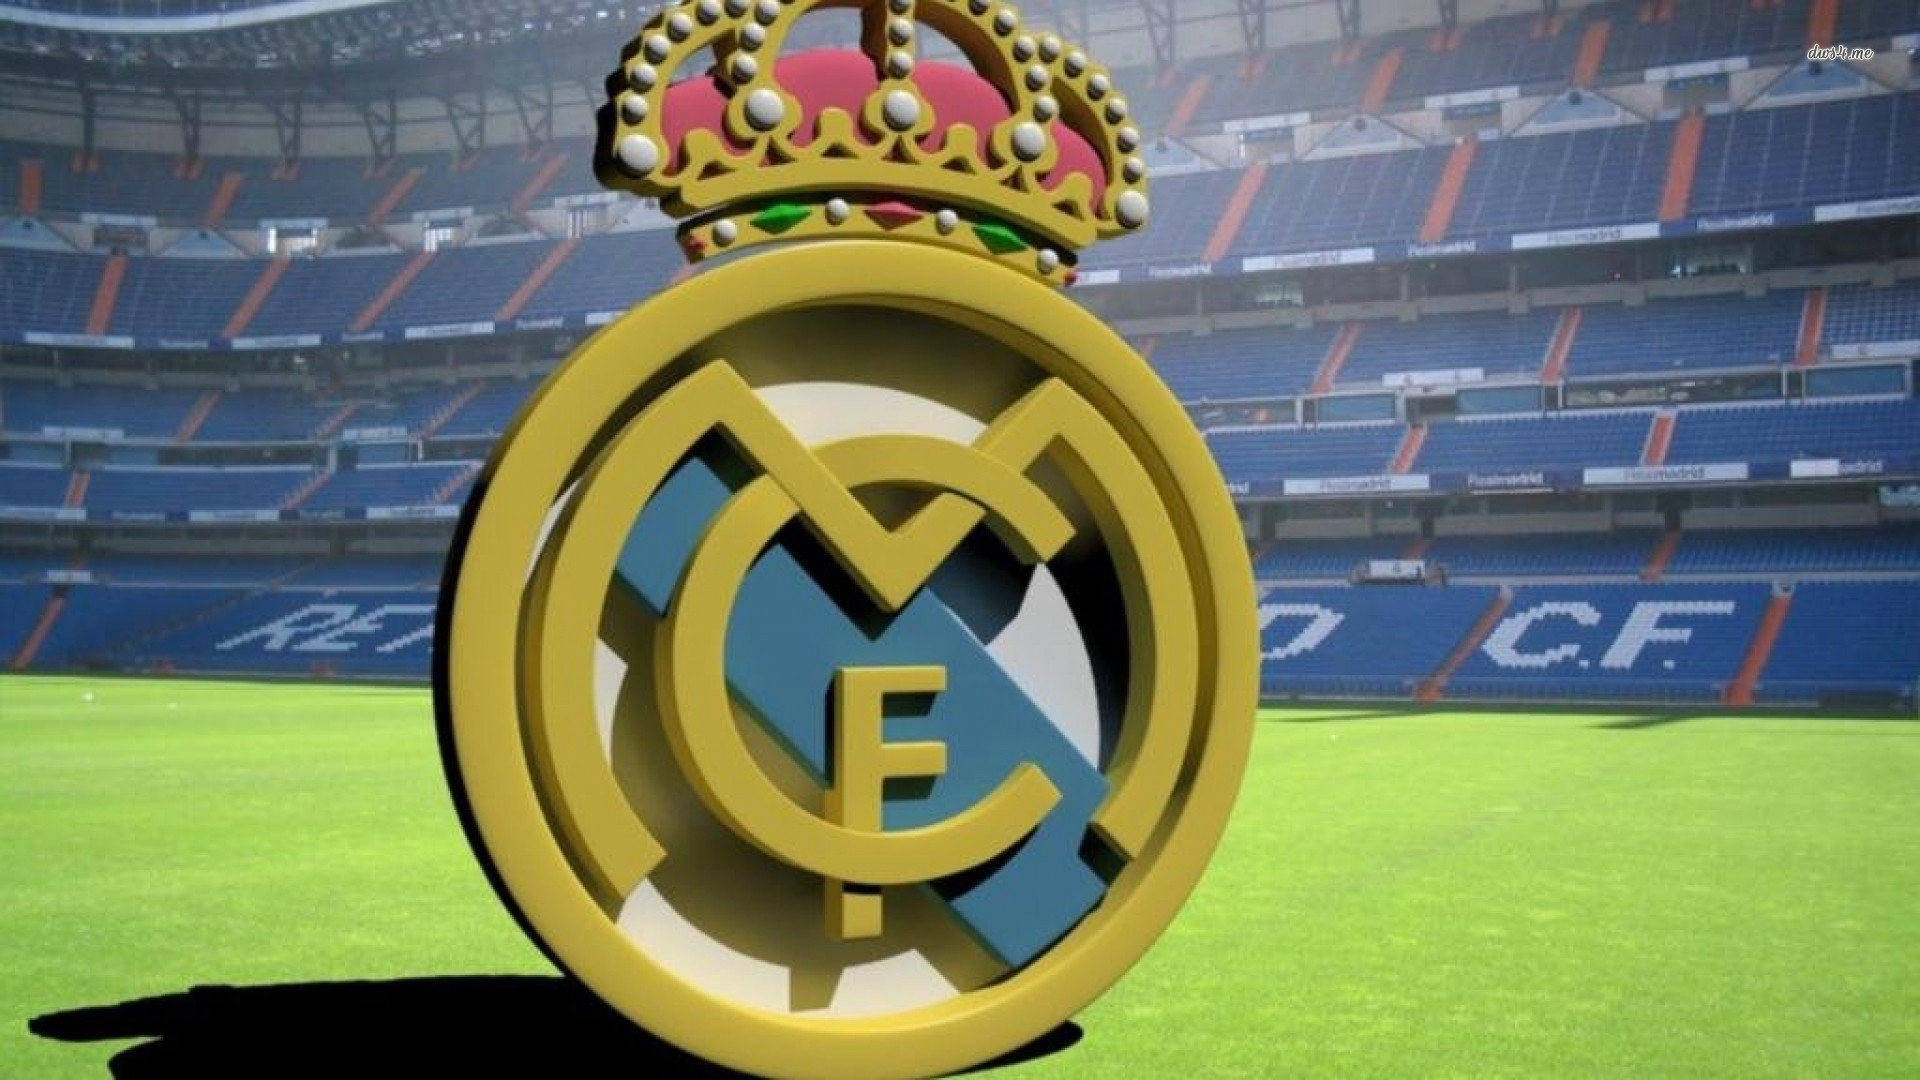 1920x1080 real madrid logo wallpapers hd 2015 desktop wallpapers high definition  monitor download free amazing background photos artwork 1920×1080 Wallpaper  HD